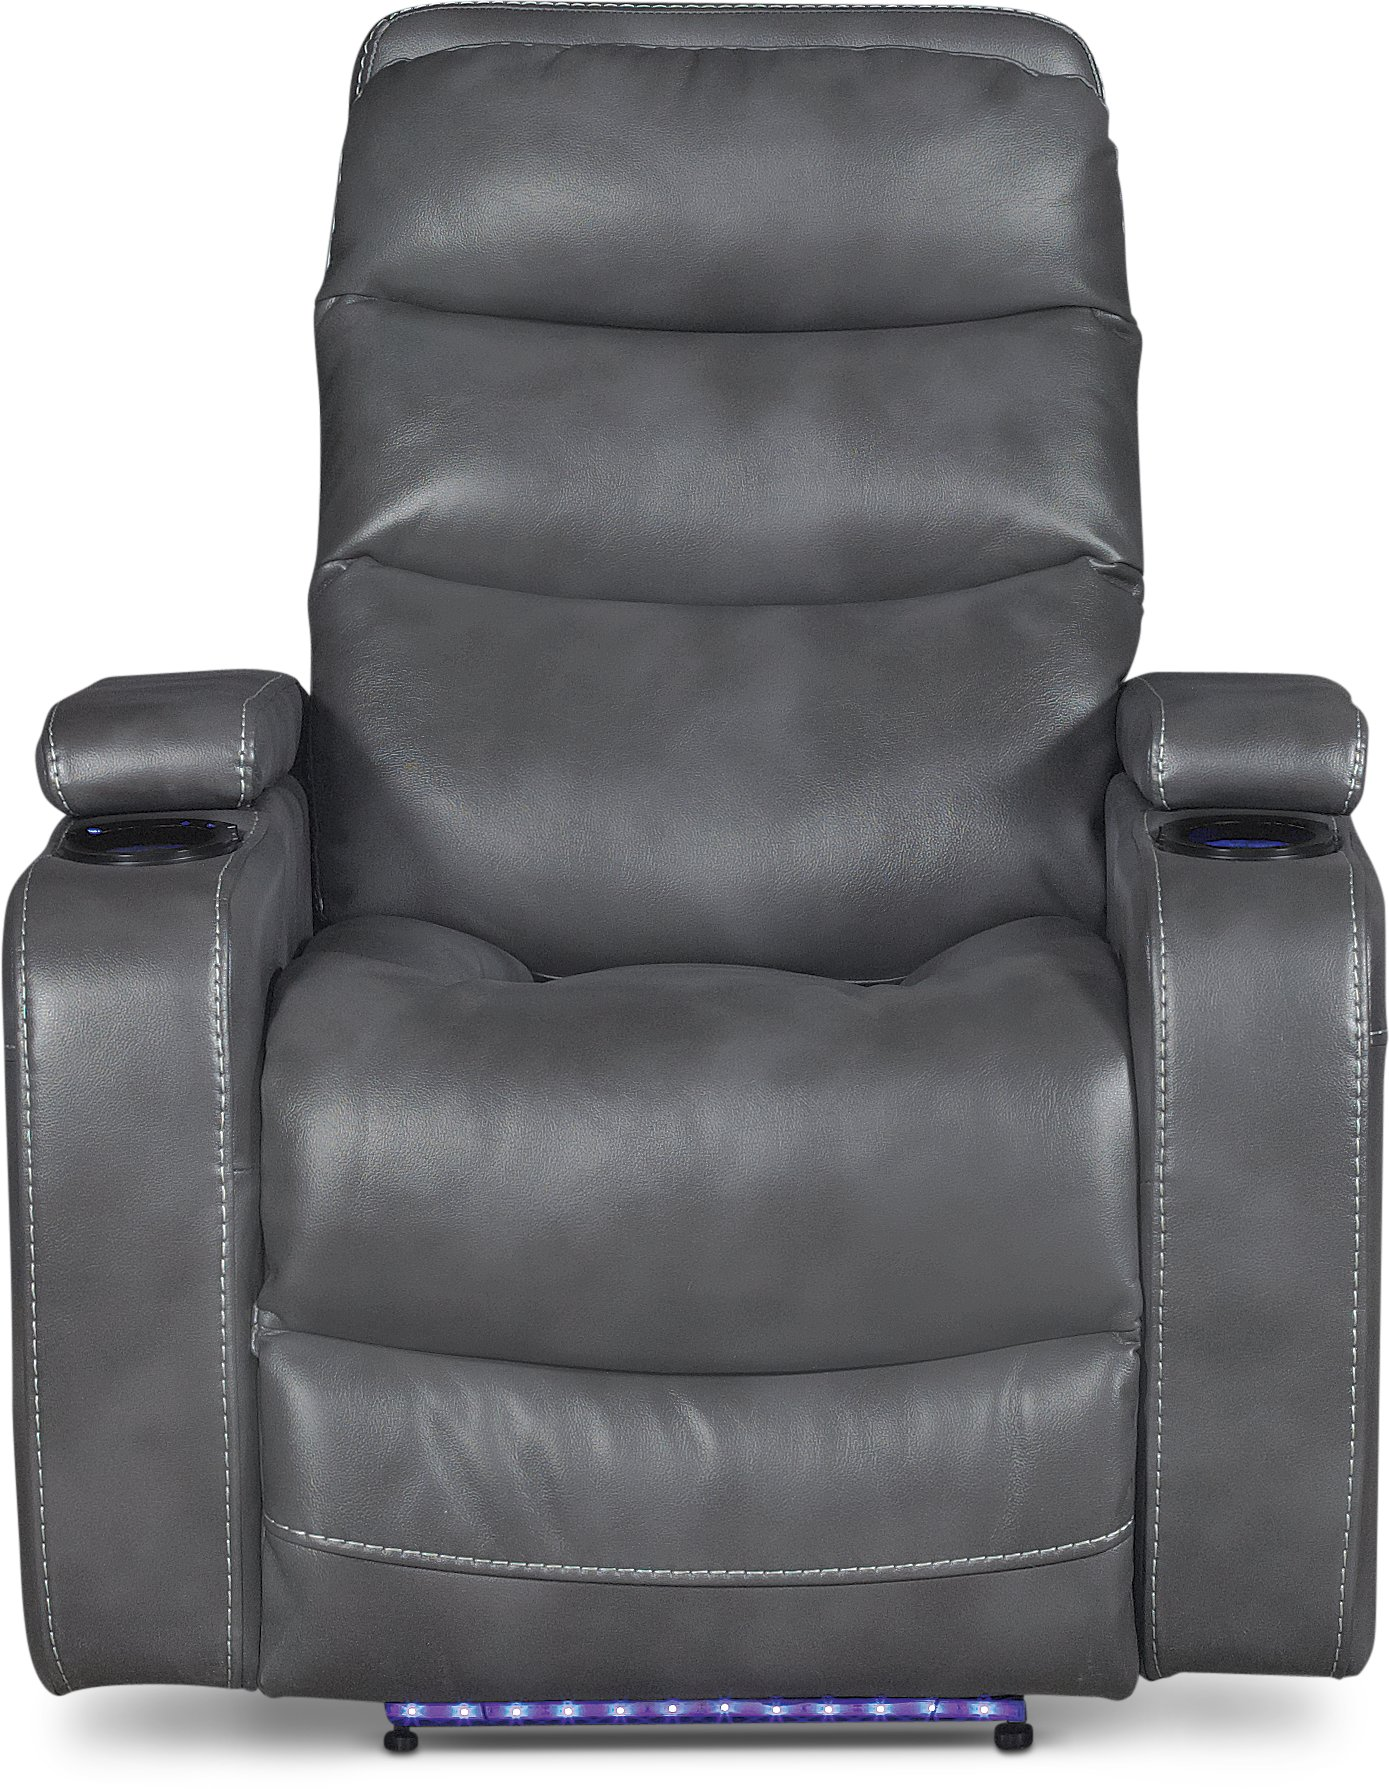 theater htd seating series centerstage canada home platinum recliners recliner